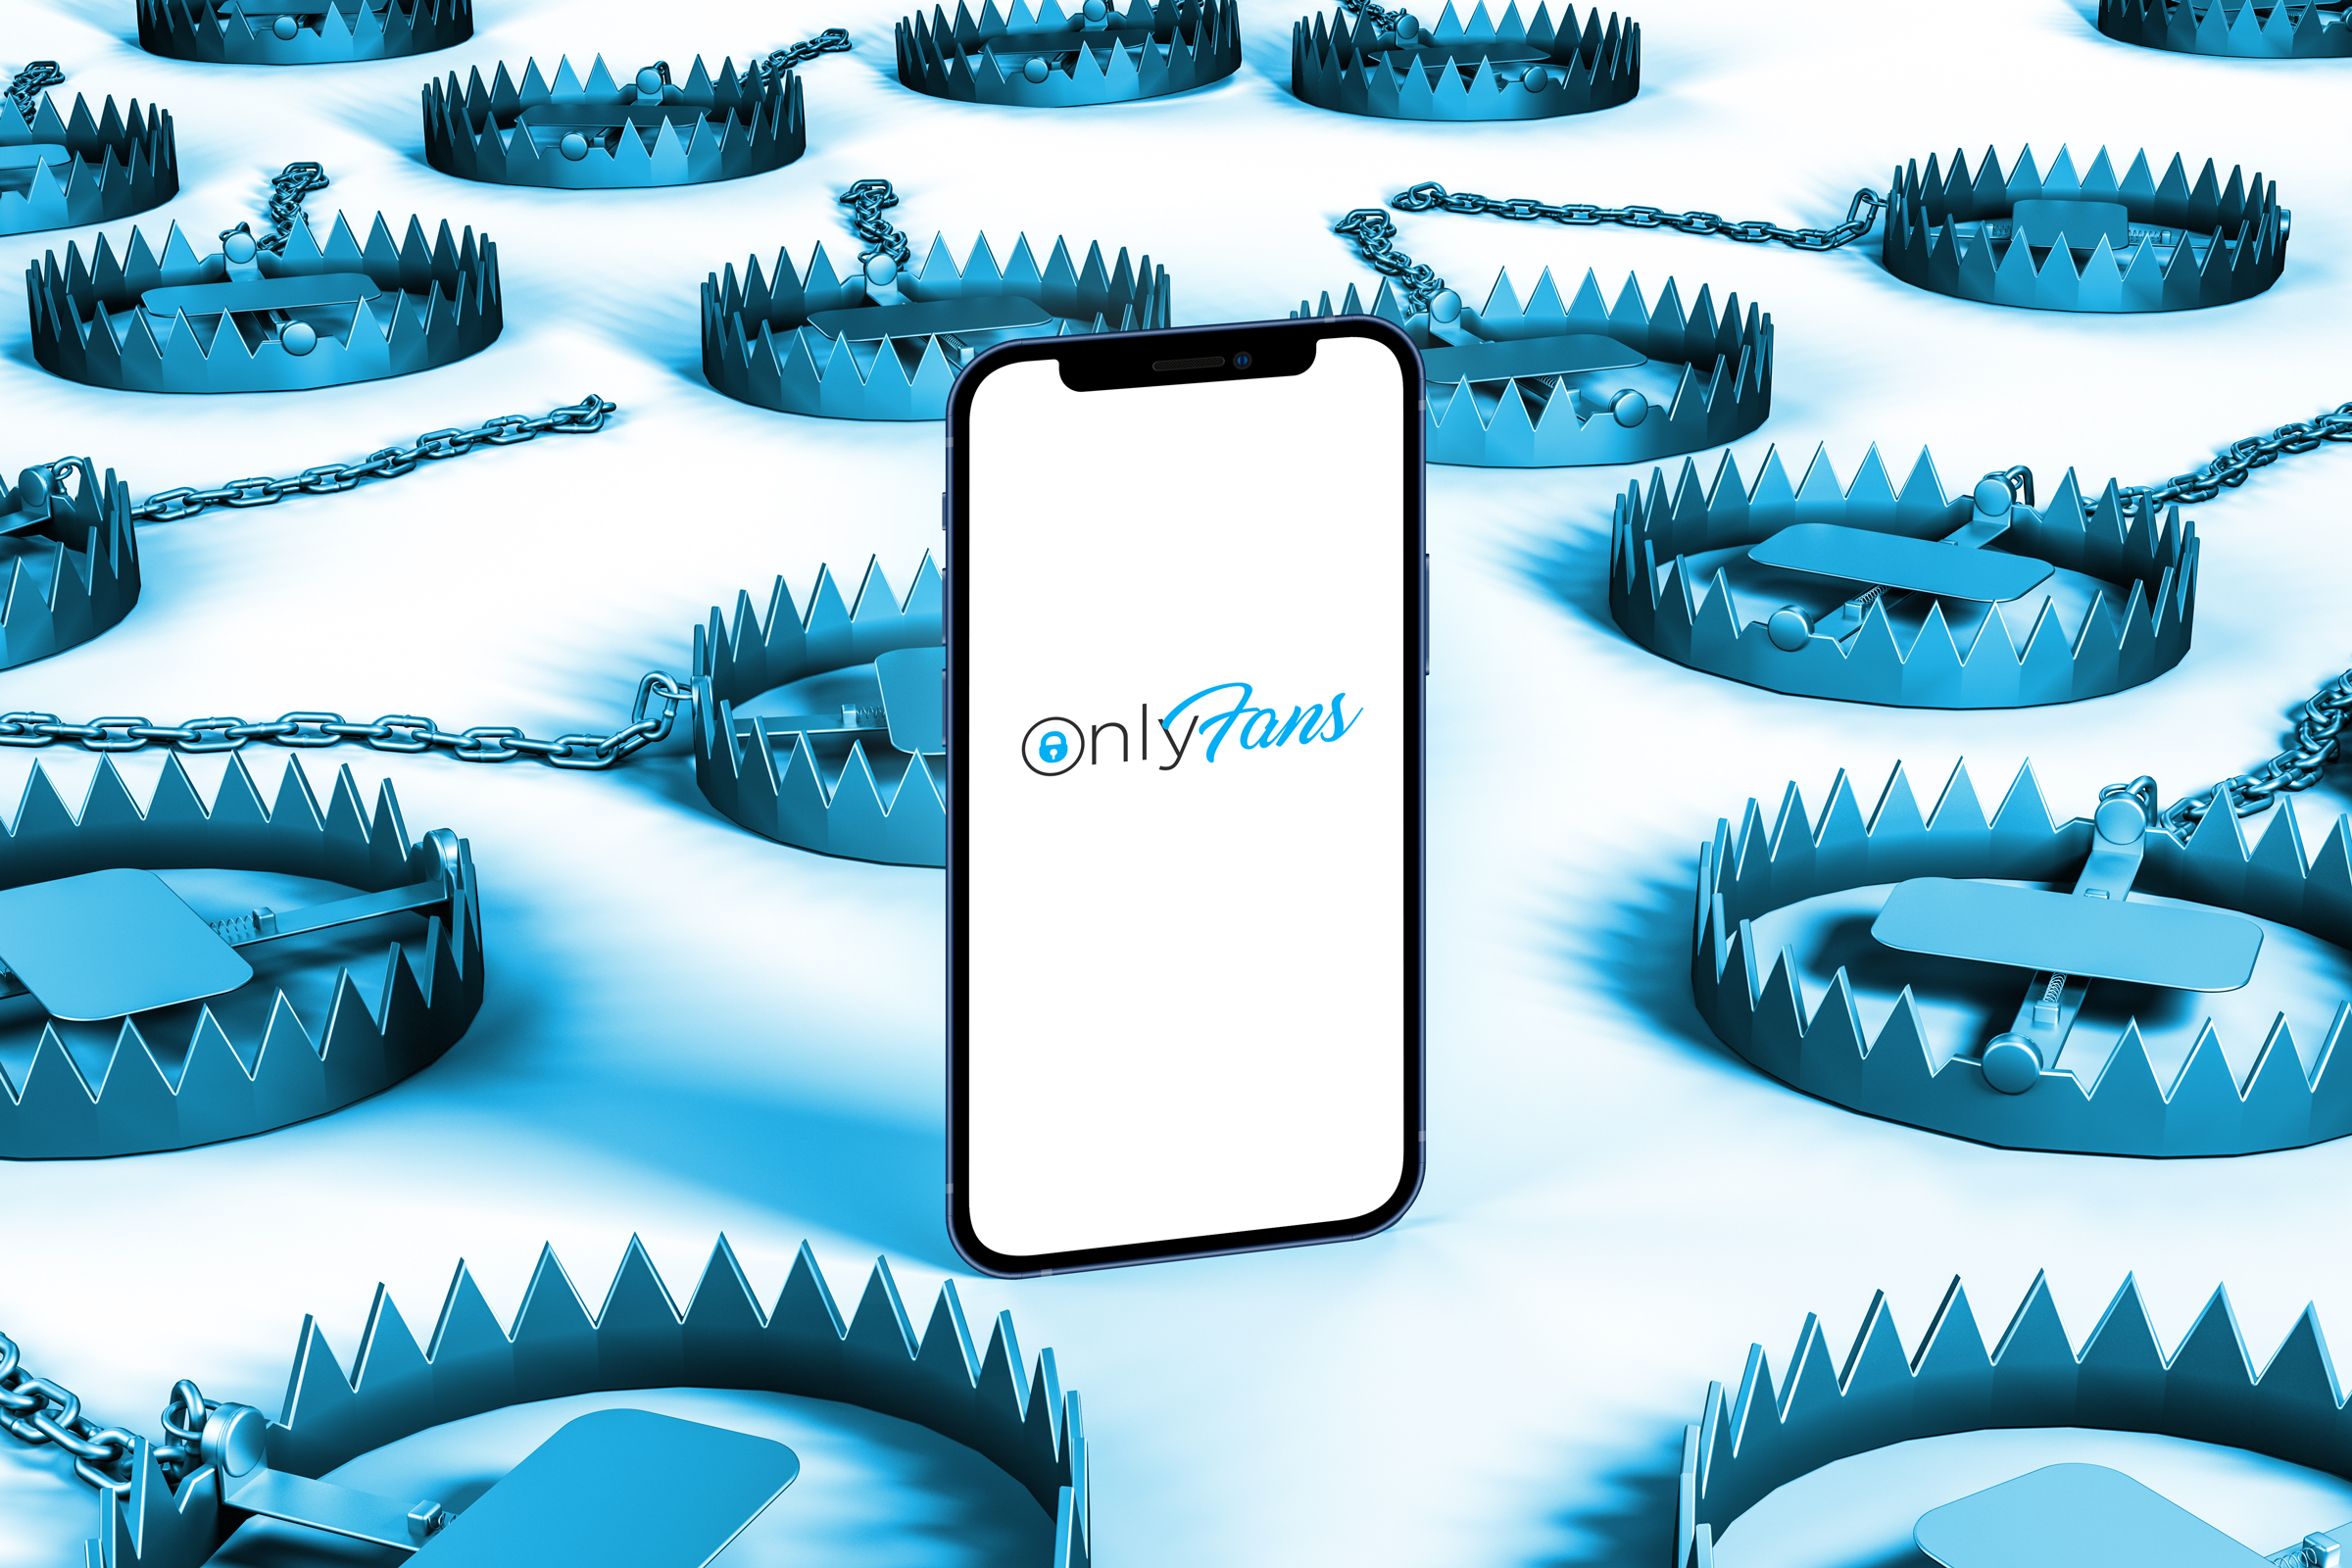 a picture of a cell phone with OnlyFans pulled up surrounded by icy blue bear traps